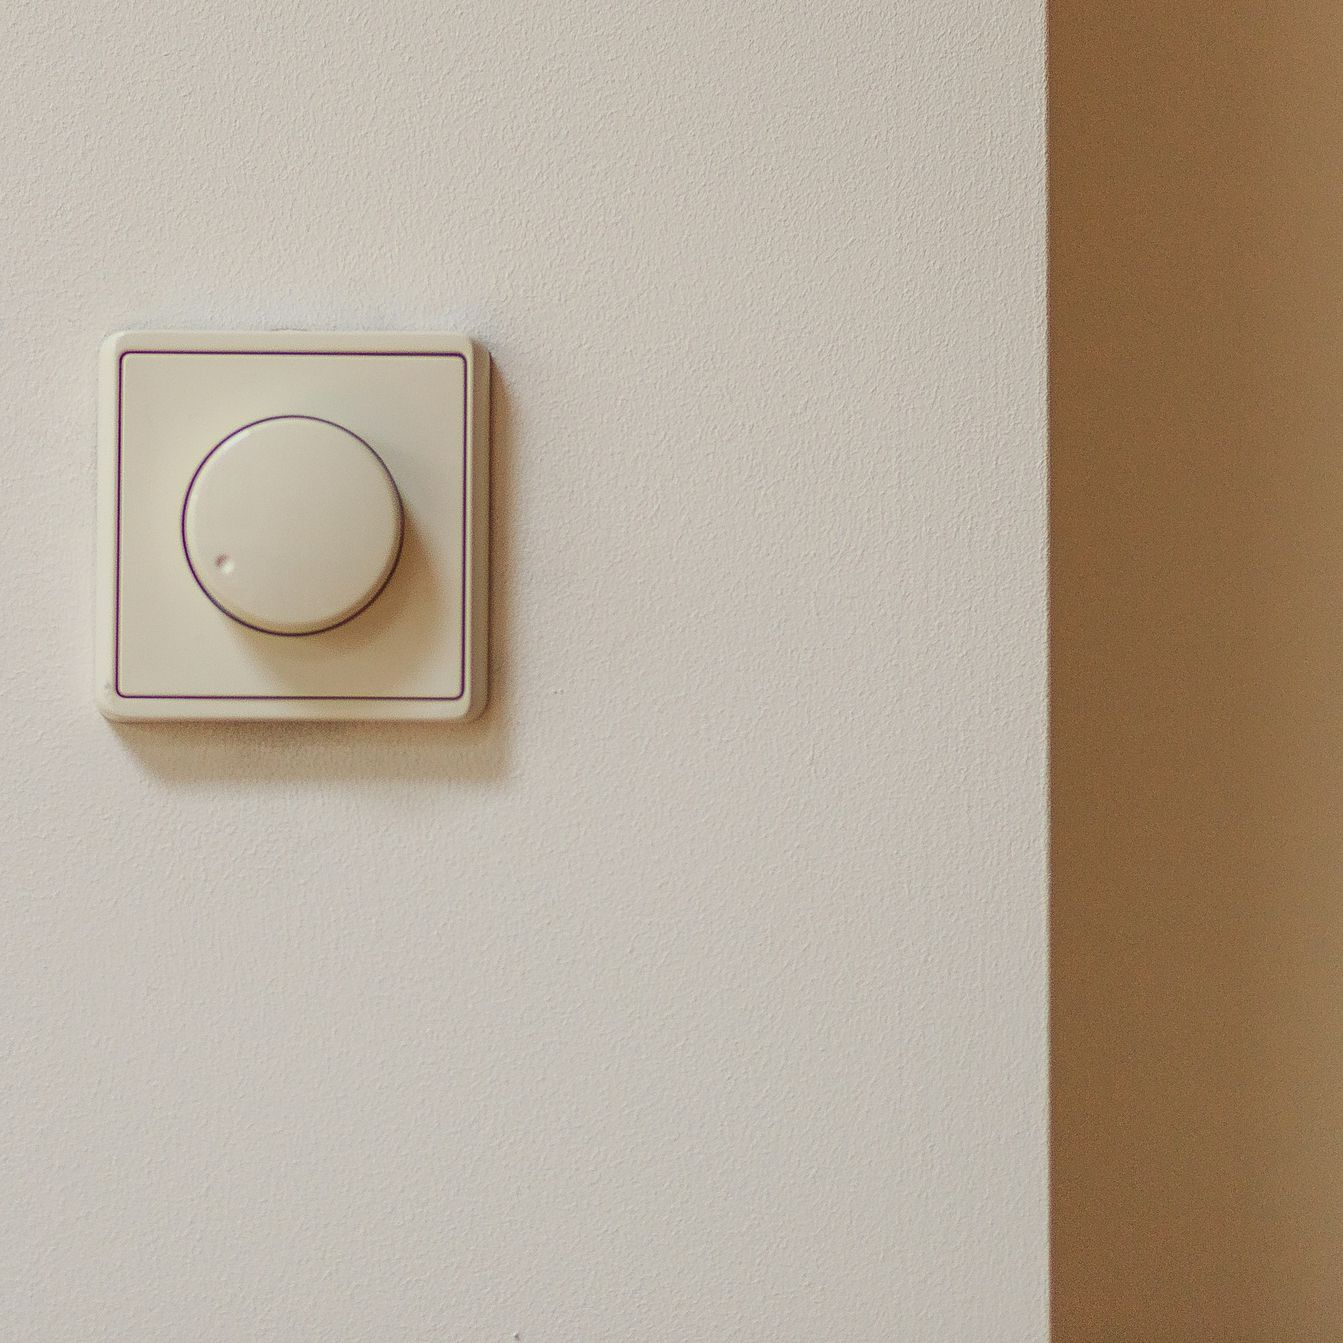 What Is a Rotary Dimmer Switch?  Way Dimmer Switch Wiring Diagram Light In The Middle on